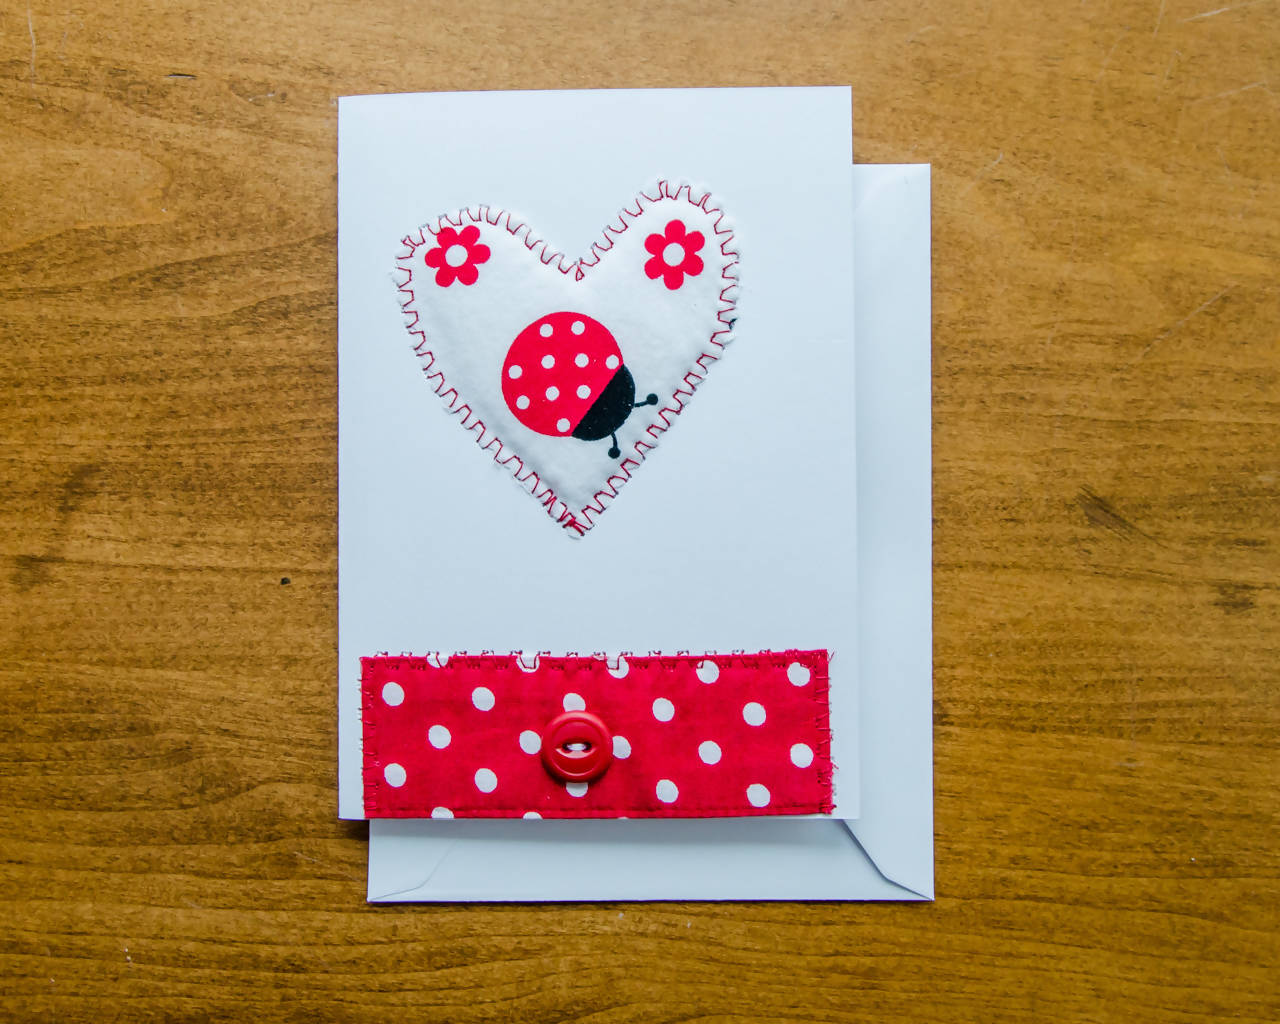 Hearts and Ladybugs Greeting Cards - Handmade - Fabric on paper / Blank Inside for any occasion. Package of 2